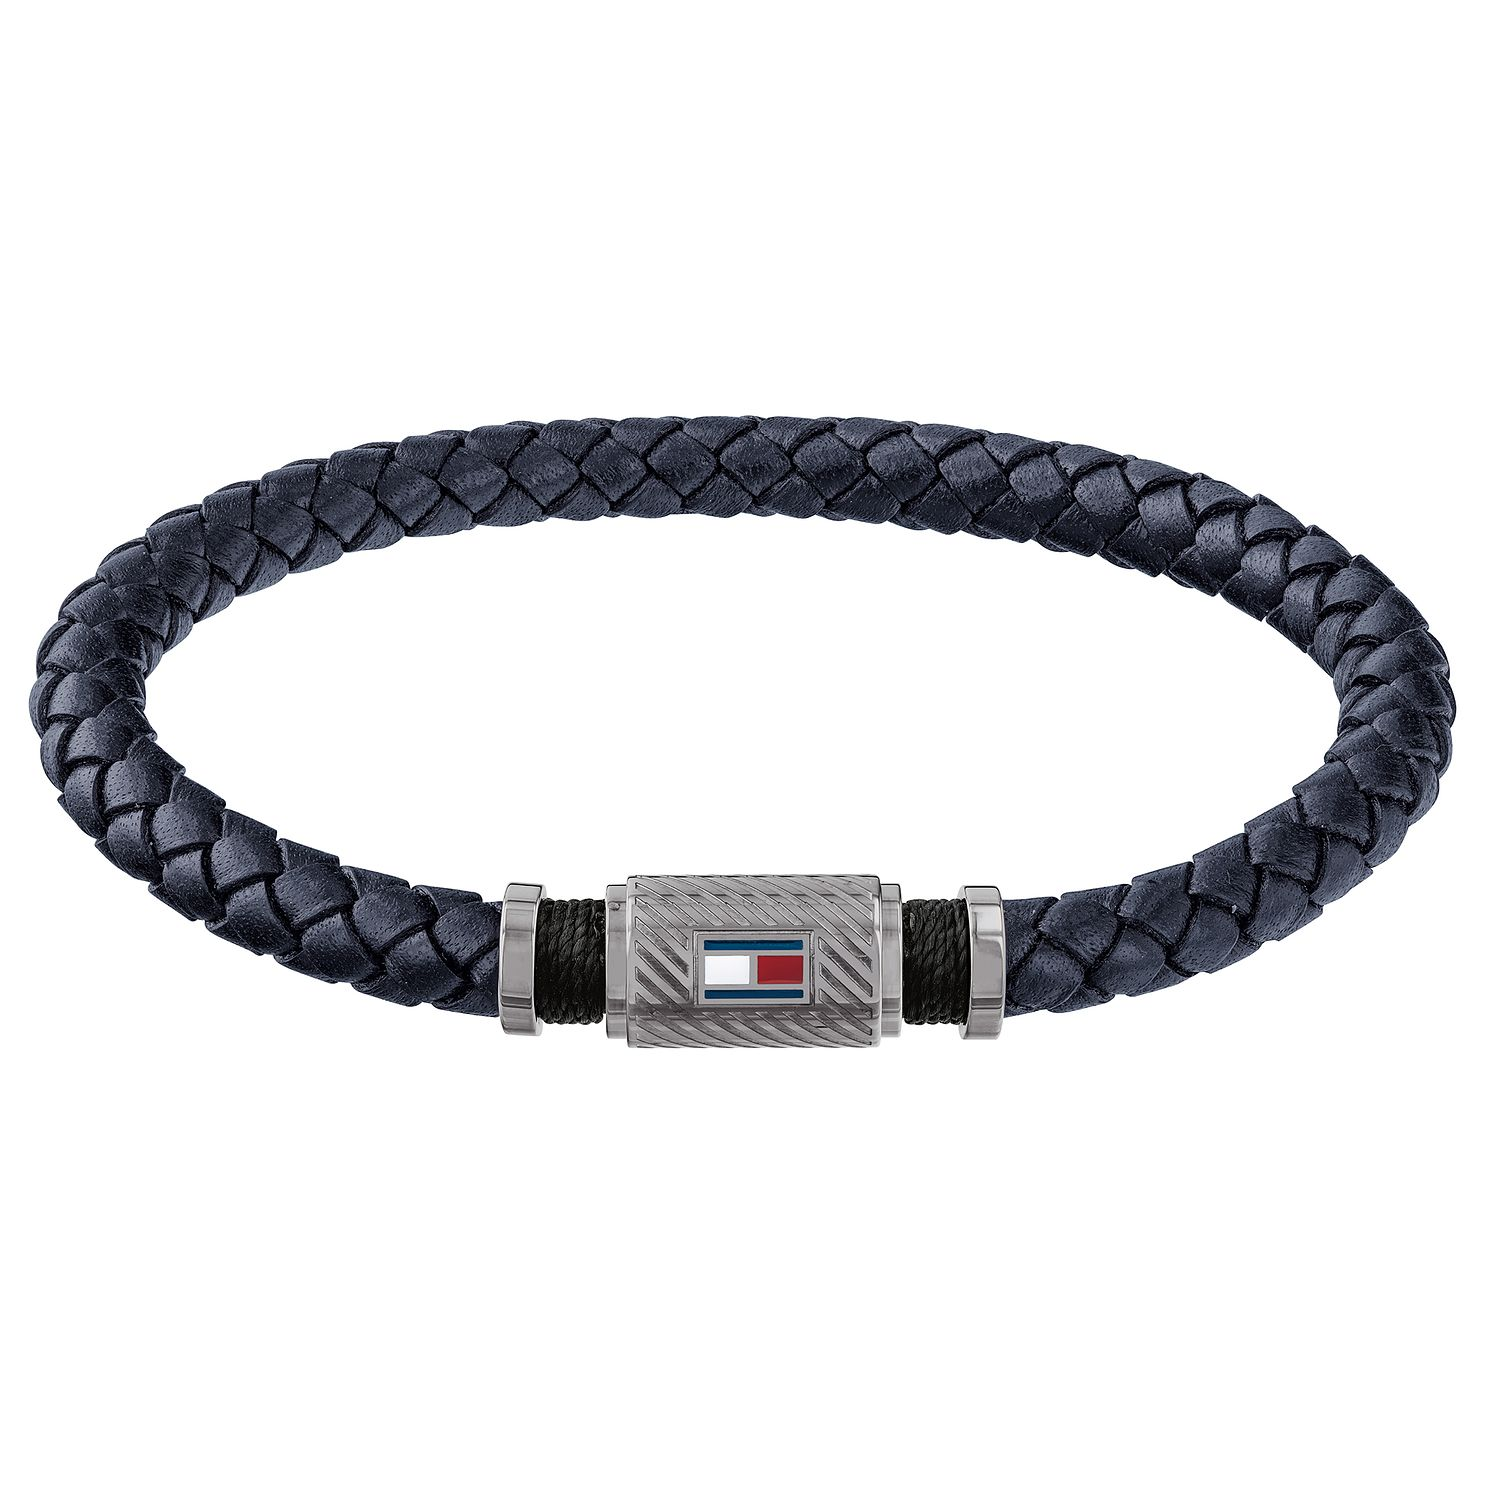 Tommy Hilfiger Navy Leather Plait Bracelet - Product number 3424251